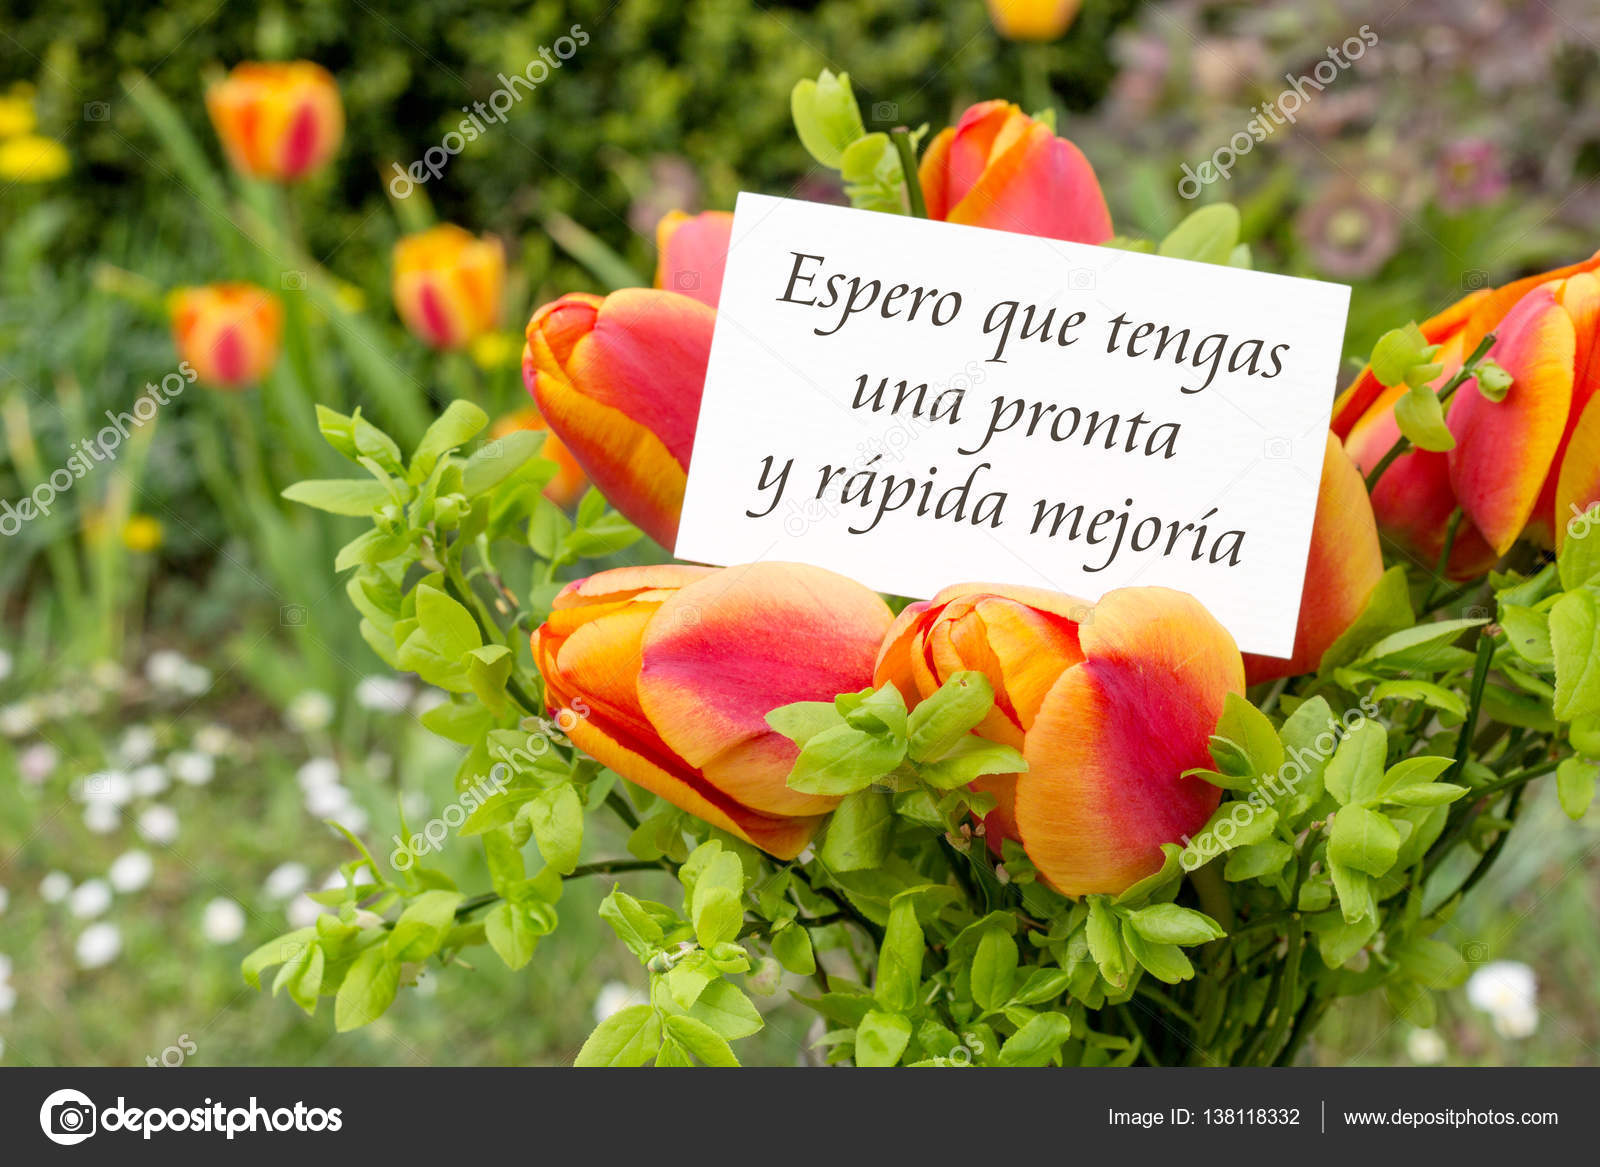 greeting card with tulips and spanish text i hope you make a swift and speedy recovery photo by coramueller